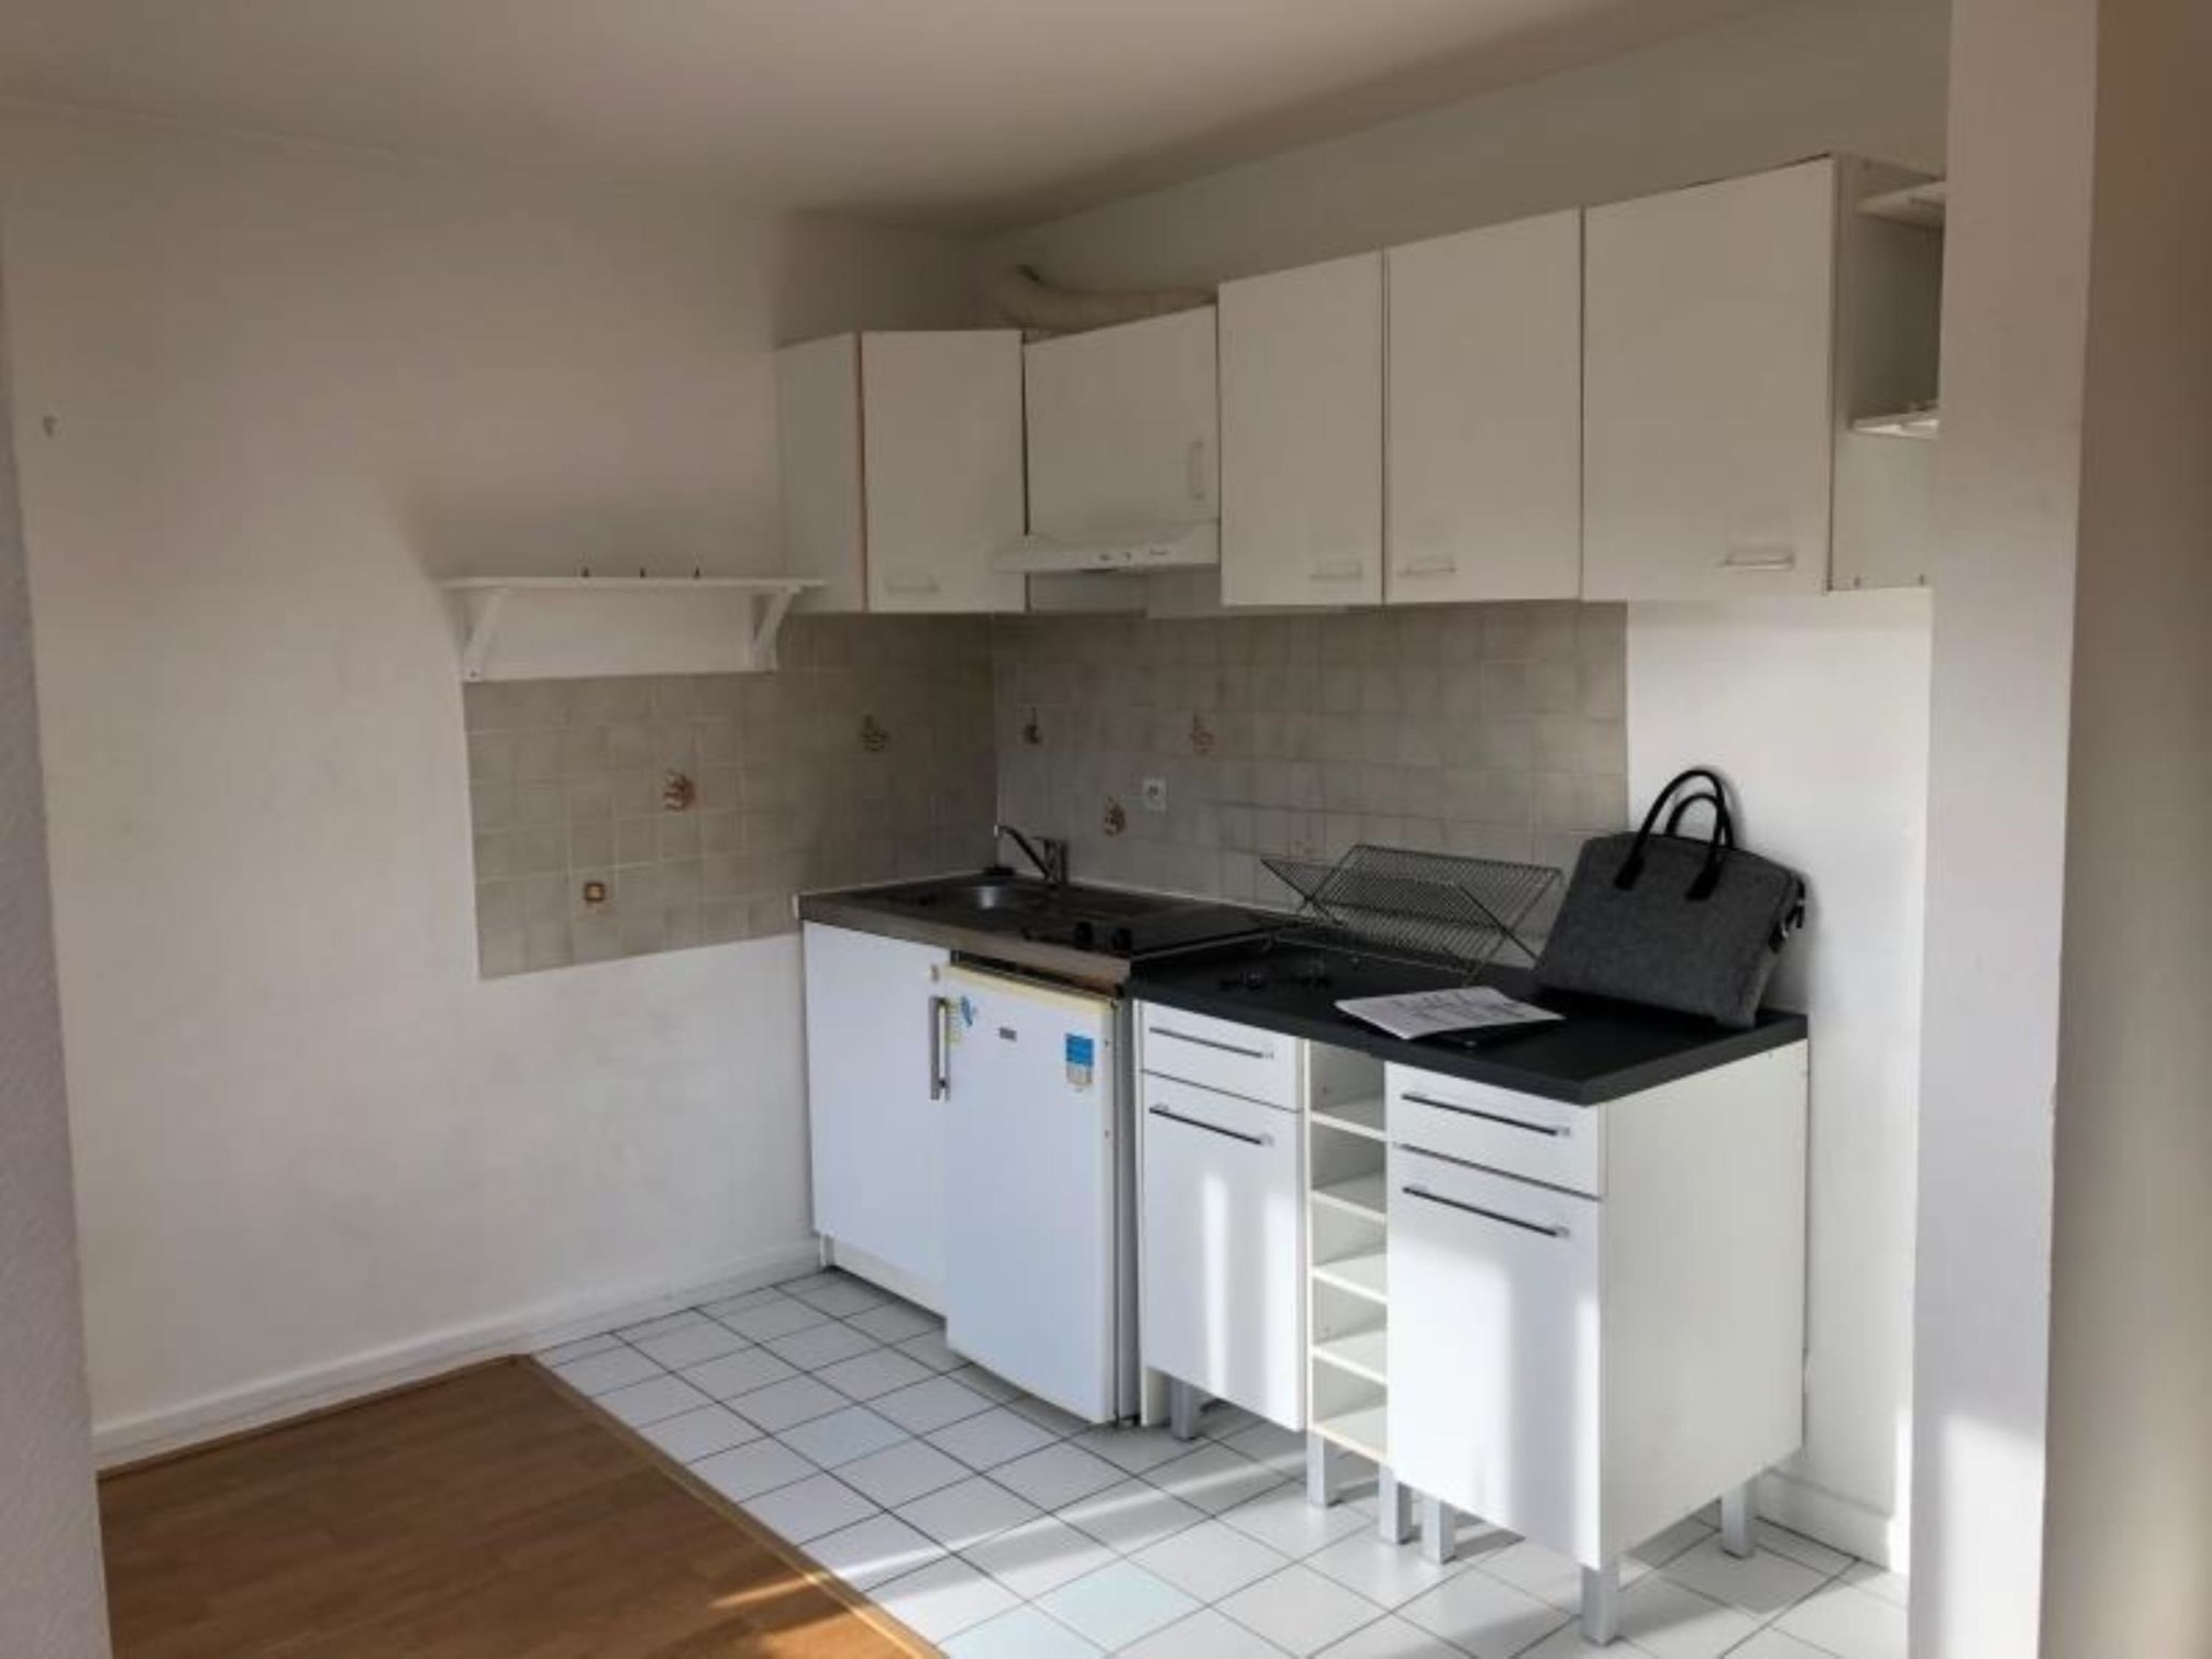 agence immobilière sevres 92 le chesnay 78 achat vente location appartement maison immobilier LMHT ANF XKYWPOHE